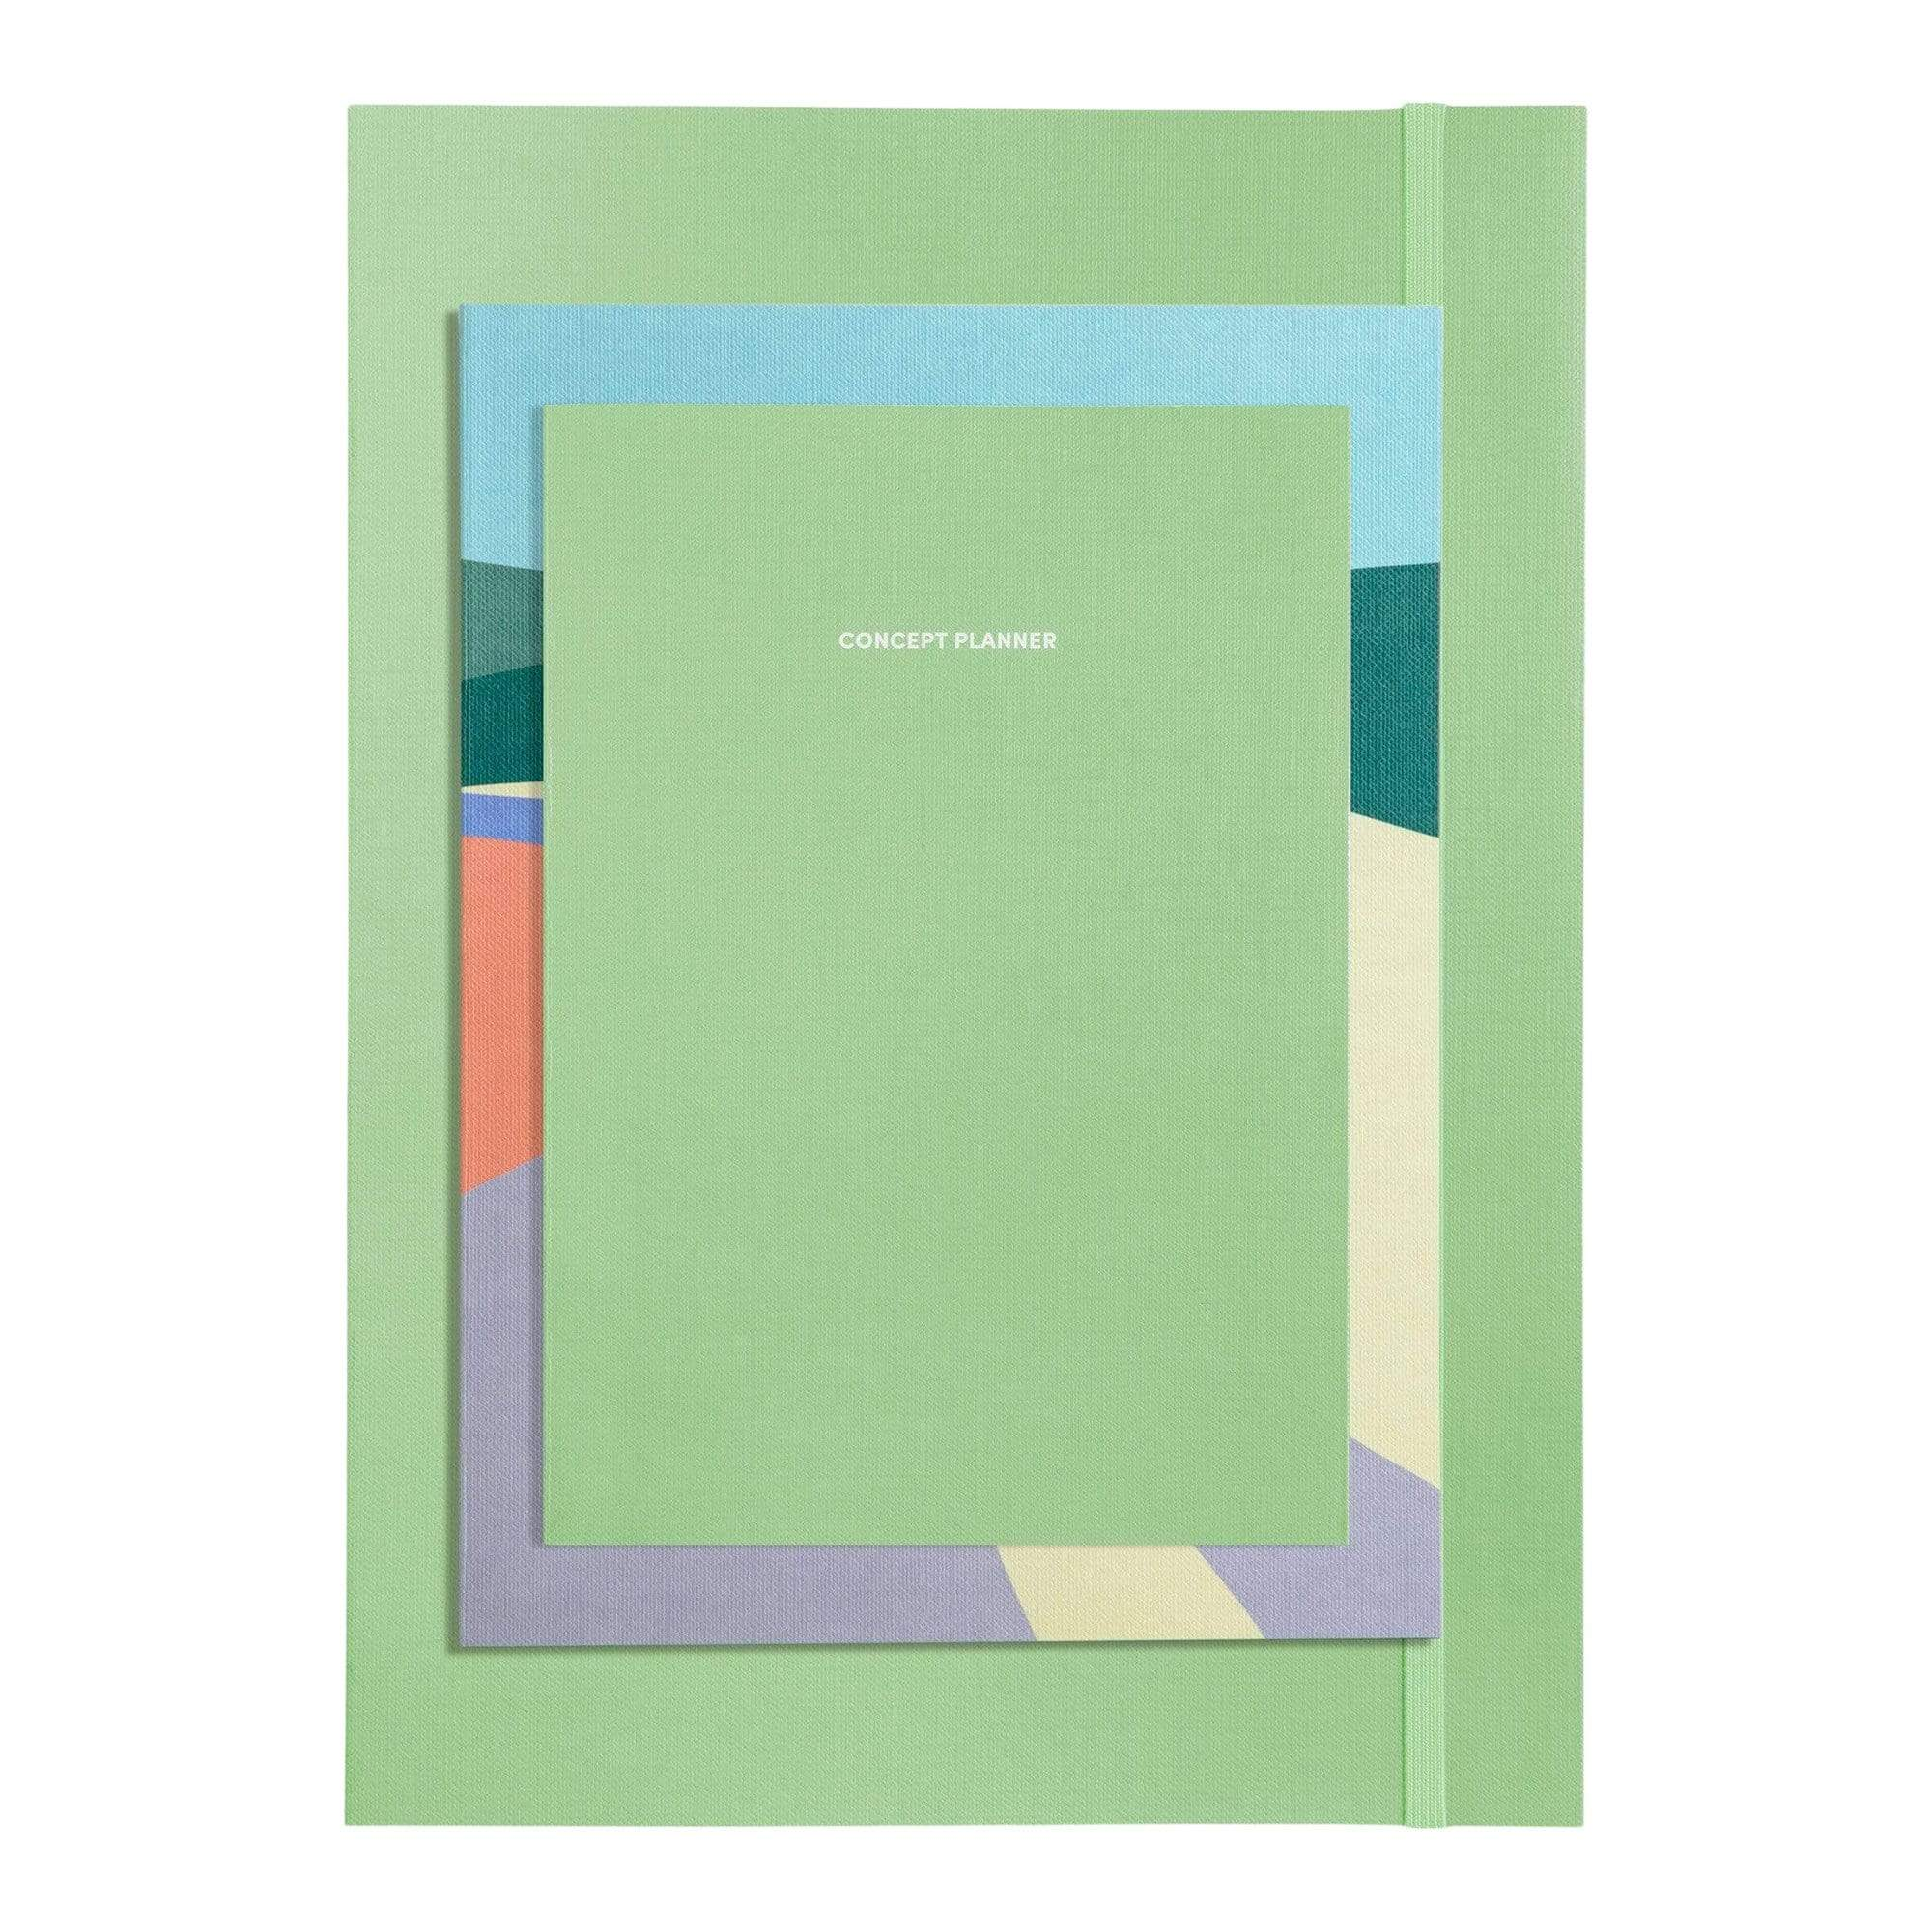 Next Page Collection Set in Seafoam